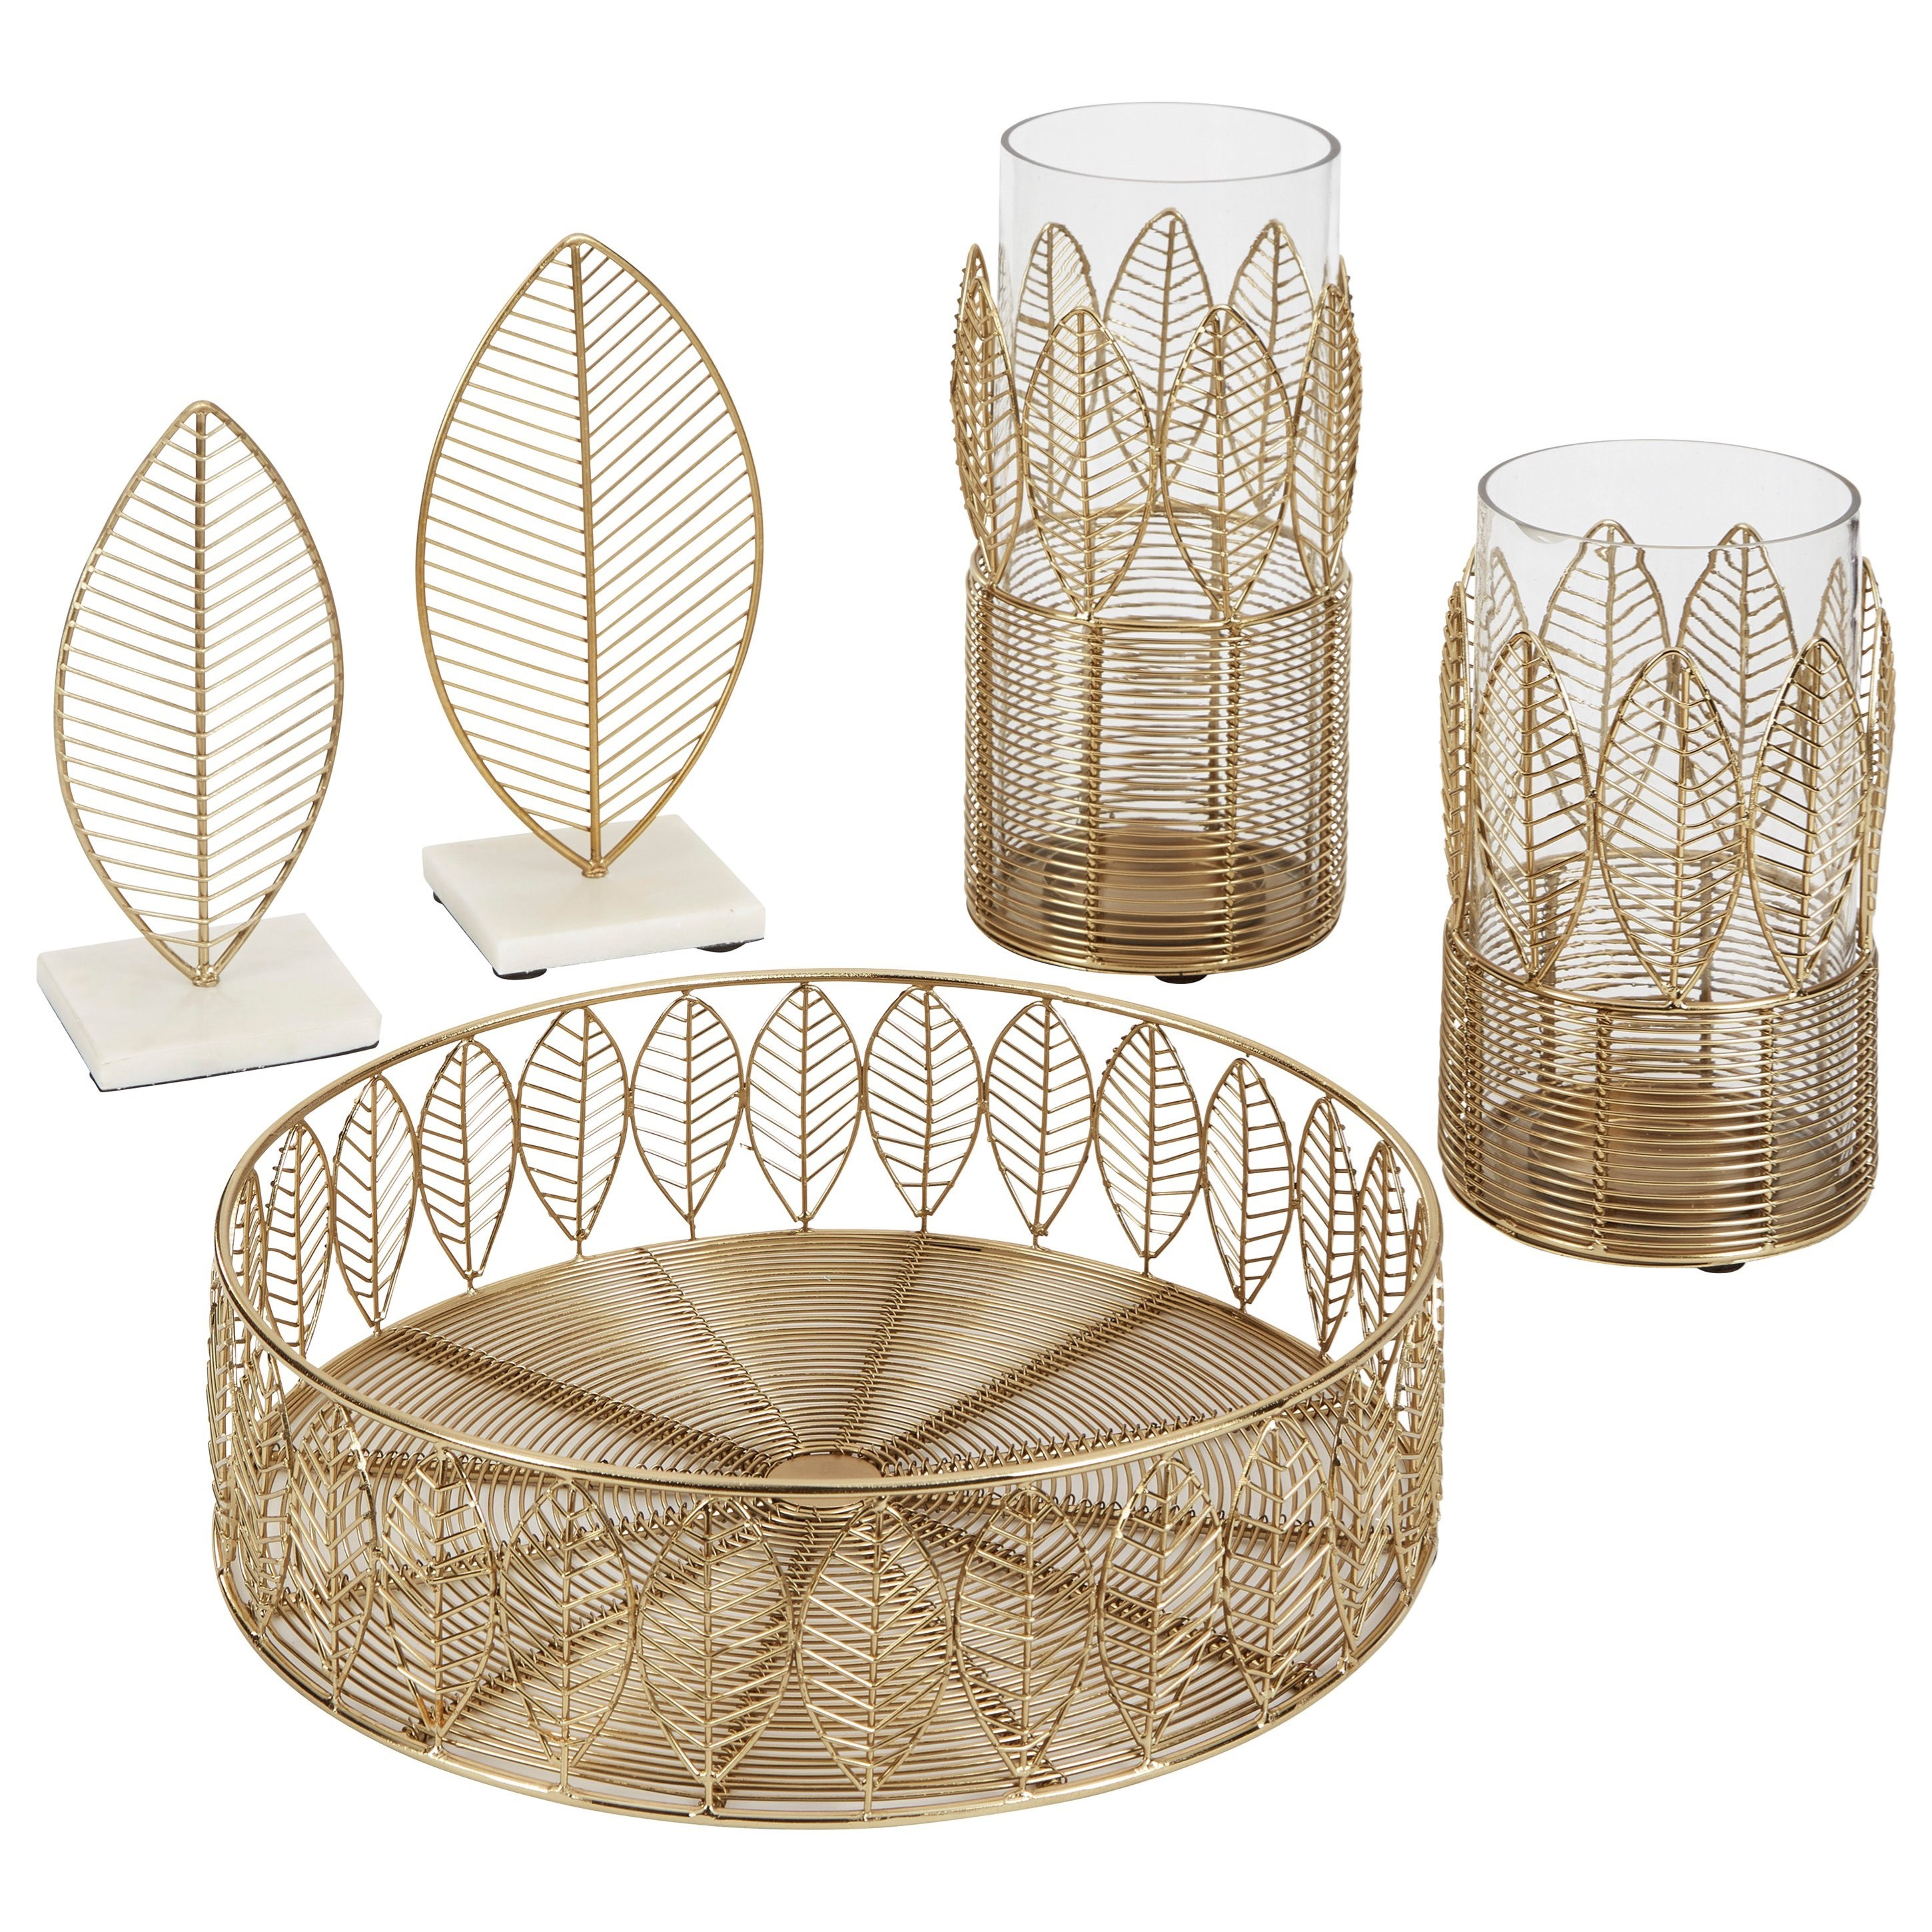 Accents Dimity Gold Finish Accessory Set by Signature Design by Ashley at Standard Furniture